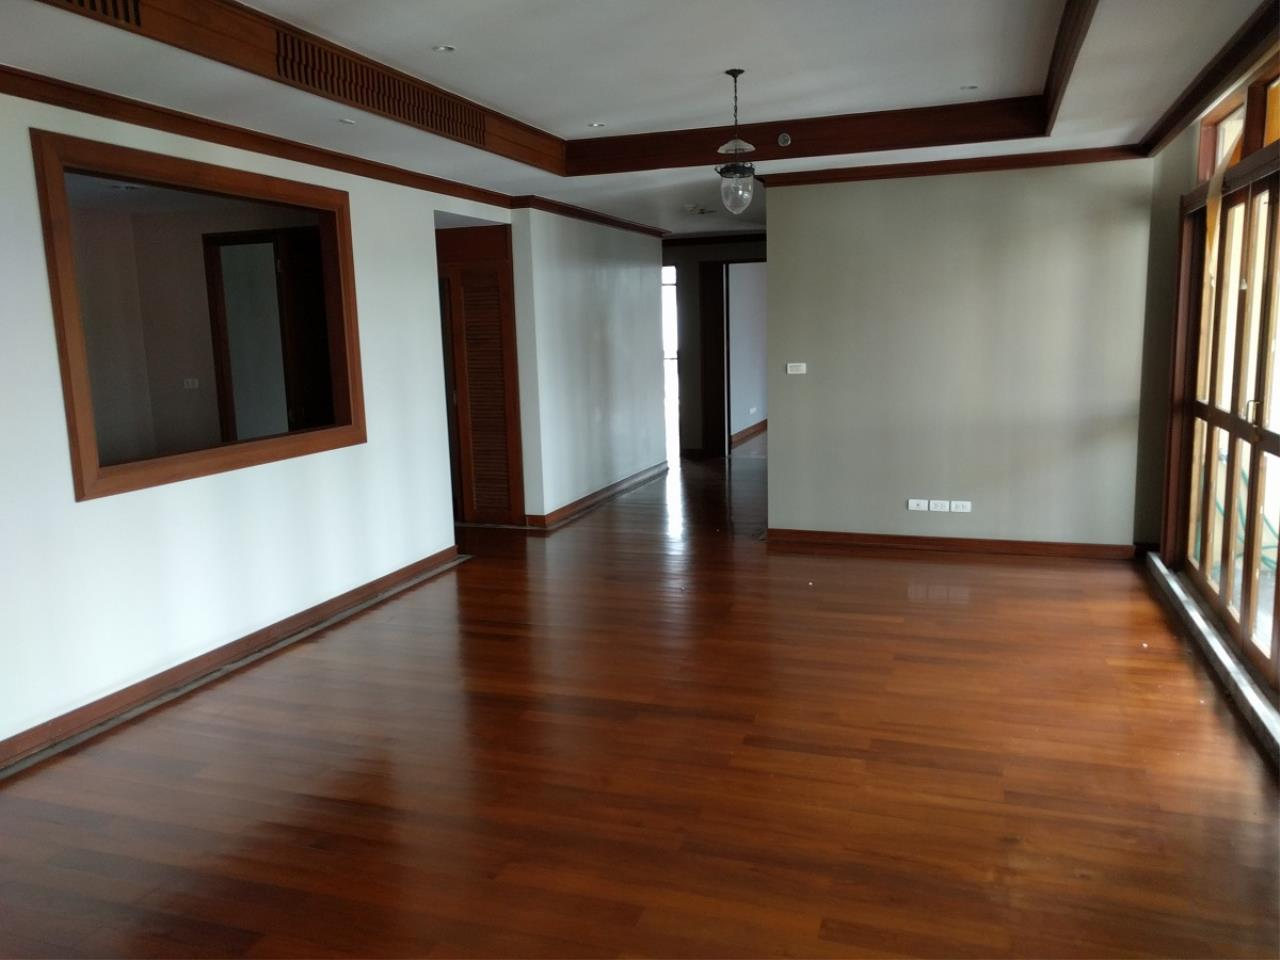 RE/MAX CondoDee Agency's Thai Elegance Luxury Condominium - Entire Building for Sale 9